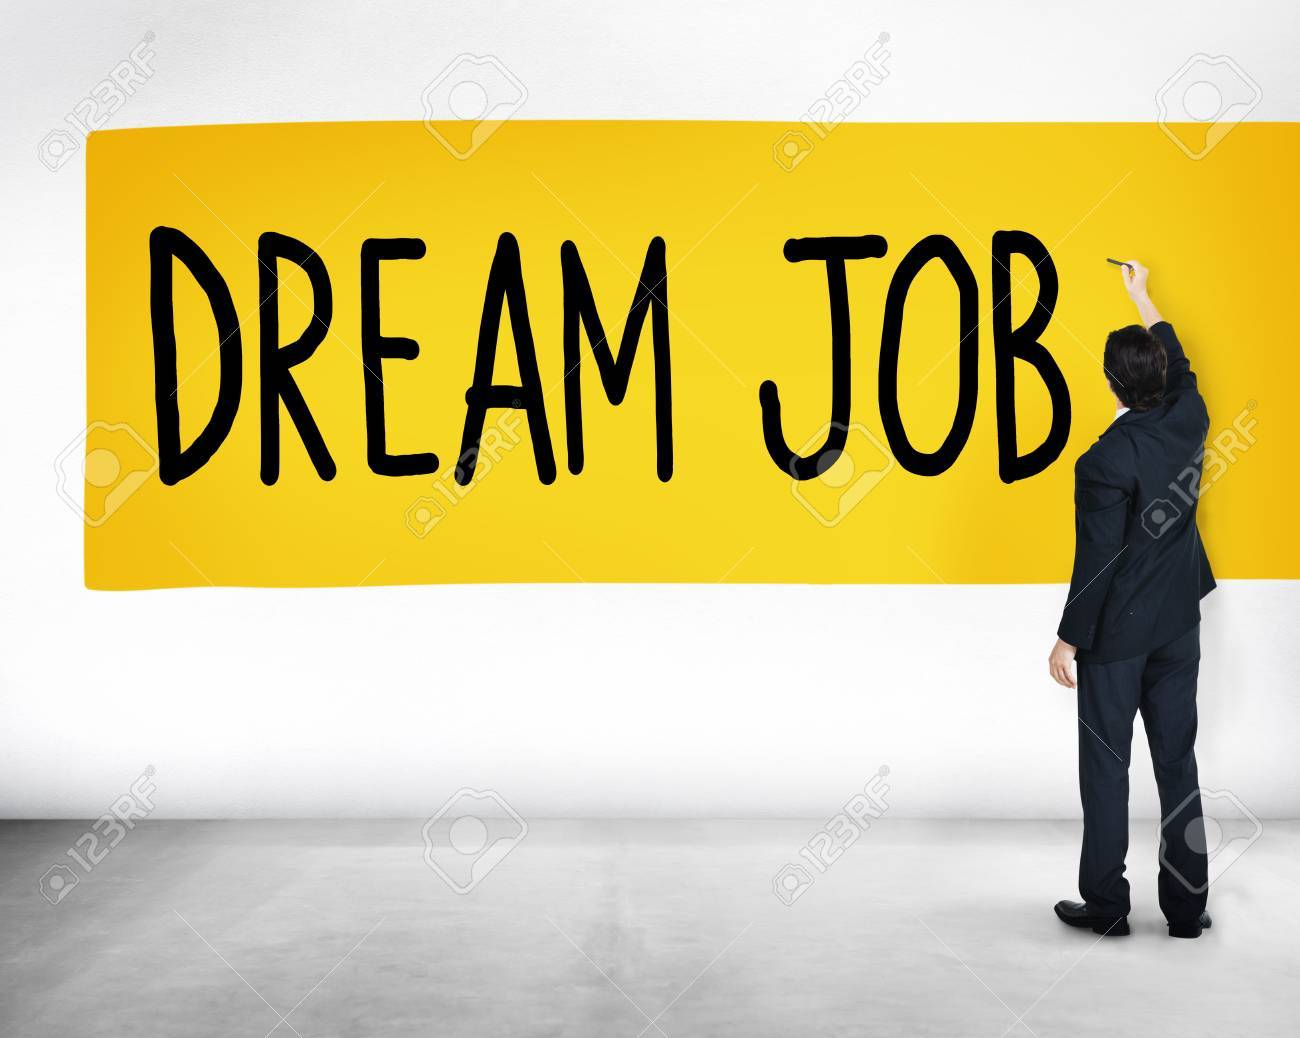 Dream Job Occupation Career Aspiration Concept Stock Photo Picture And Royalty Free Image Image 45622743